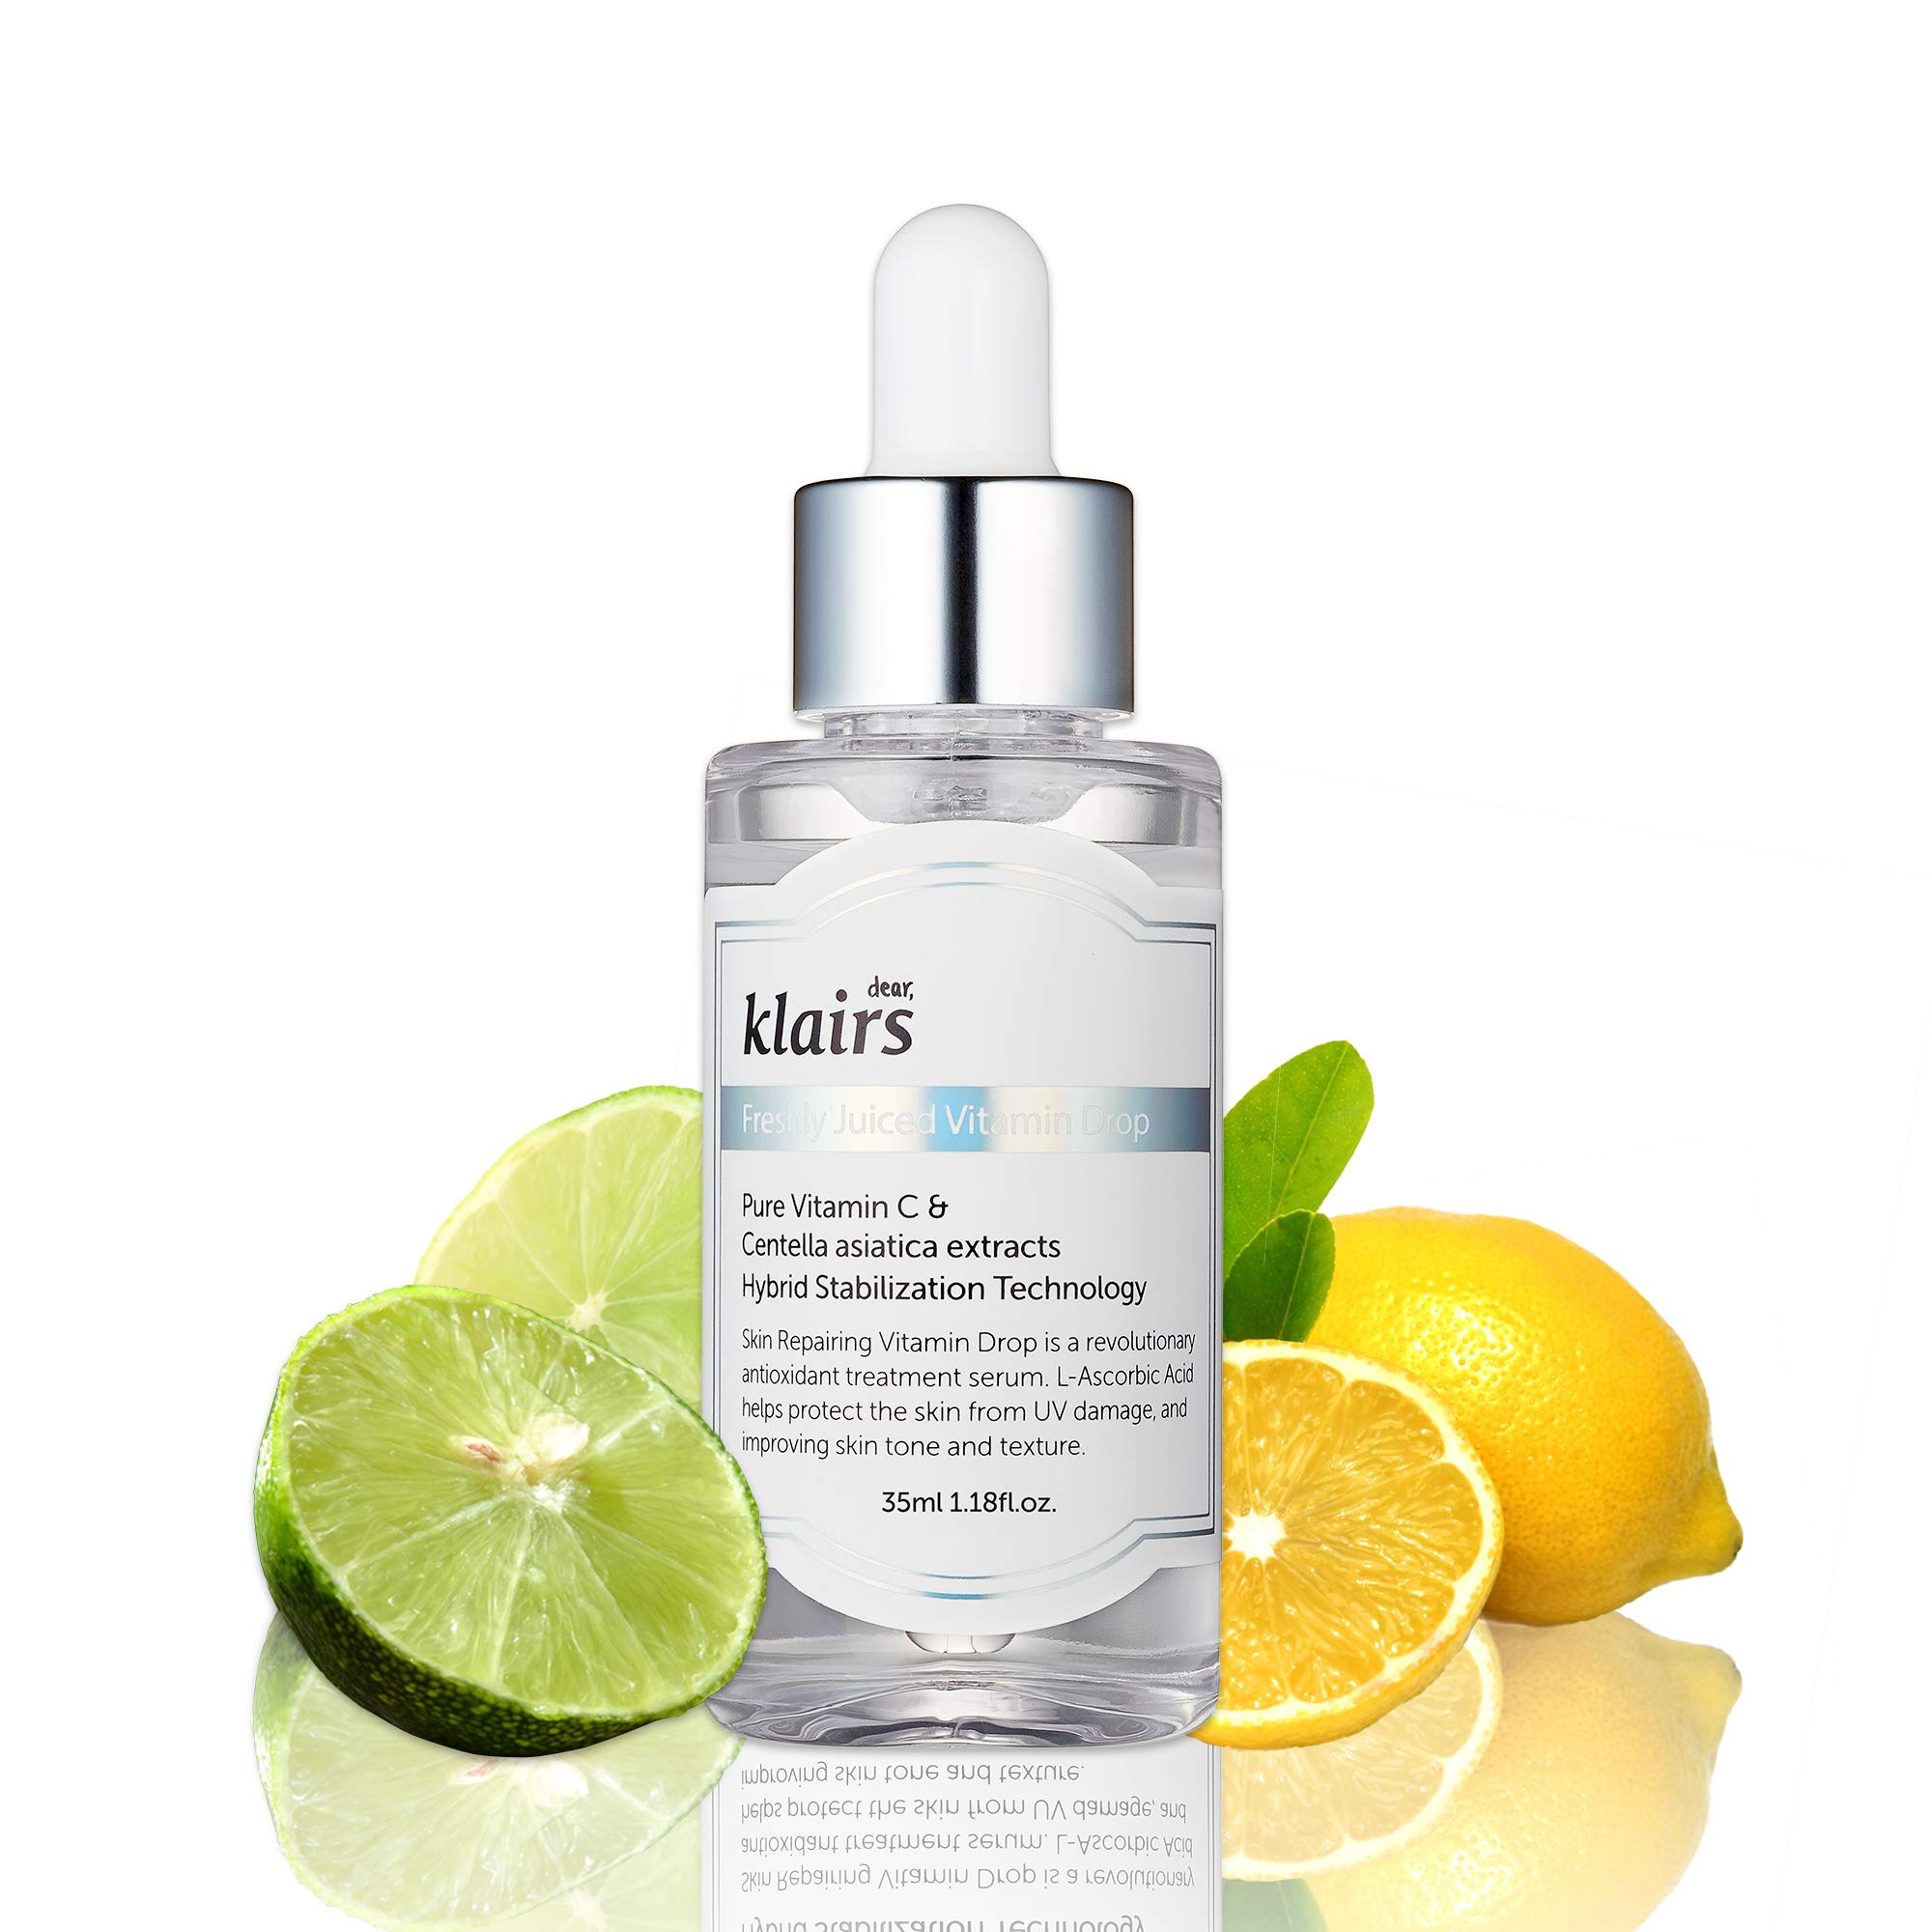 [KLAIRS] Freshly Juiced Vitamin Drop, 5% pure vitamin C, vitamin C serum, 35ml, 1.18oz by DearKlairs